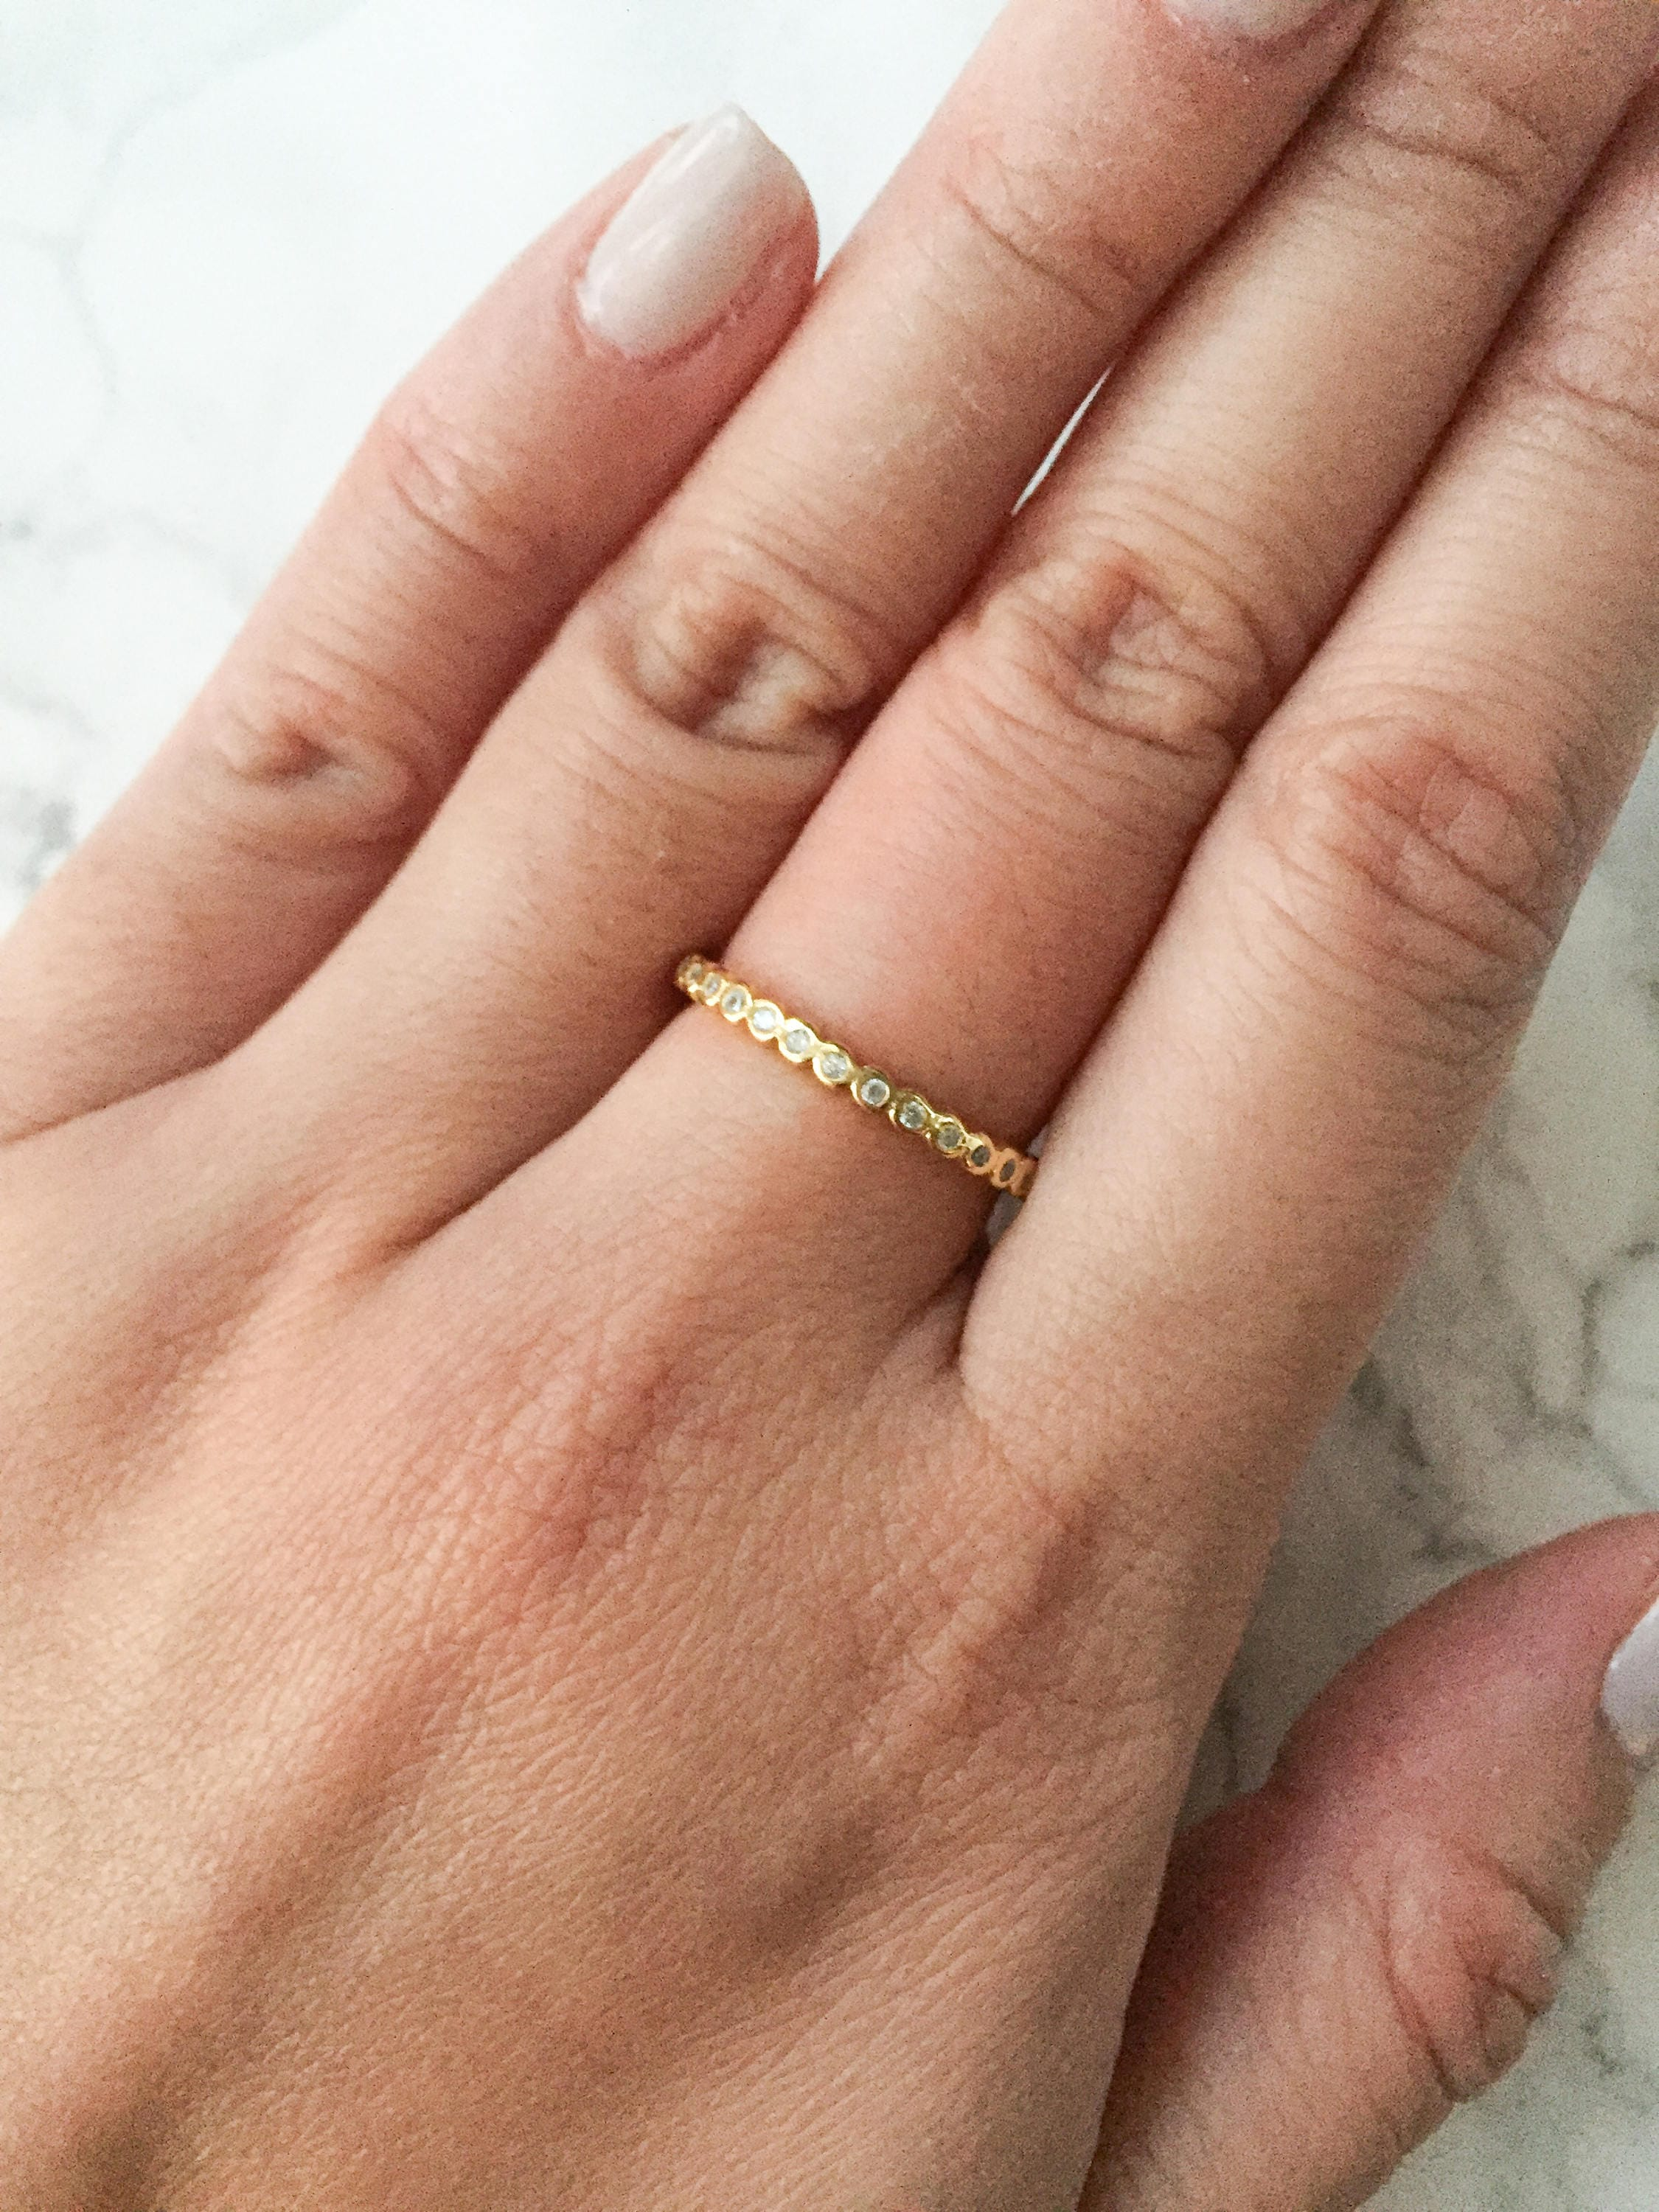 geometric ringstop p stacking ring finger gold ringskinny fullxfull midi goldsimple bands pipe thin bandtiny skinny ringpromis il band ringstackingthin simple in